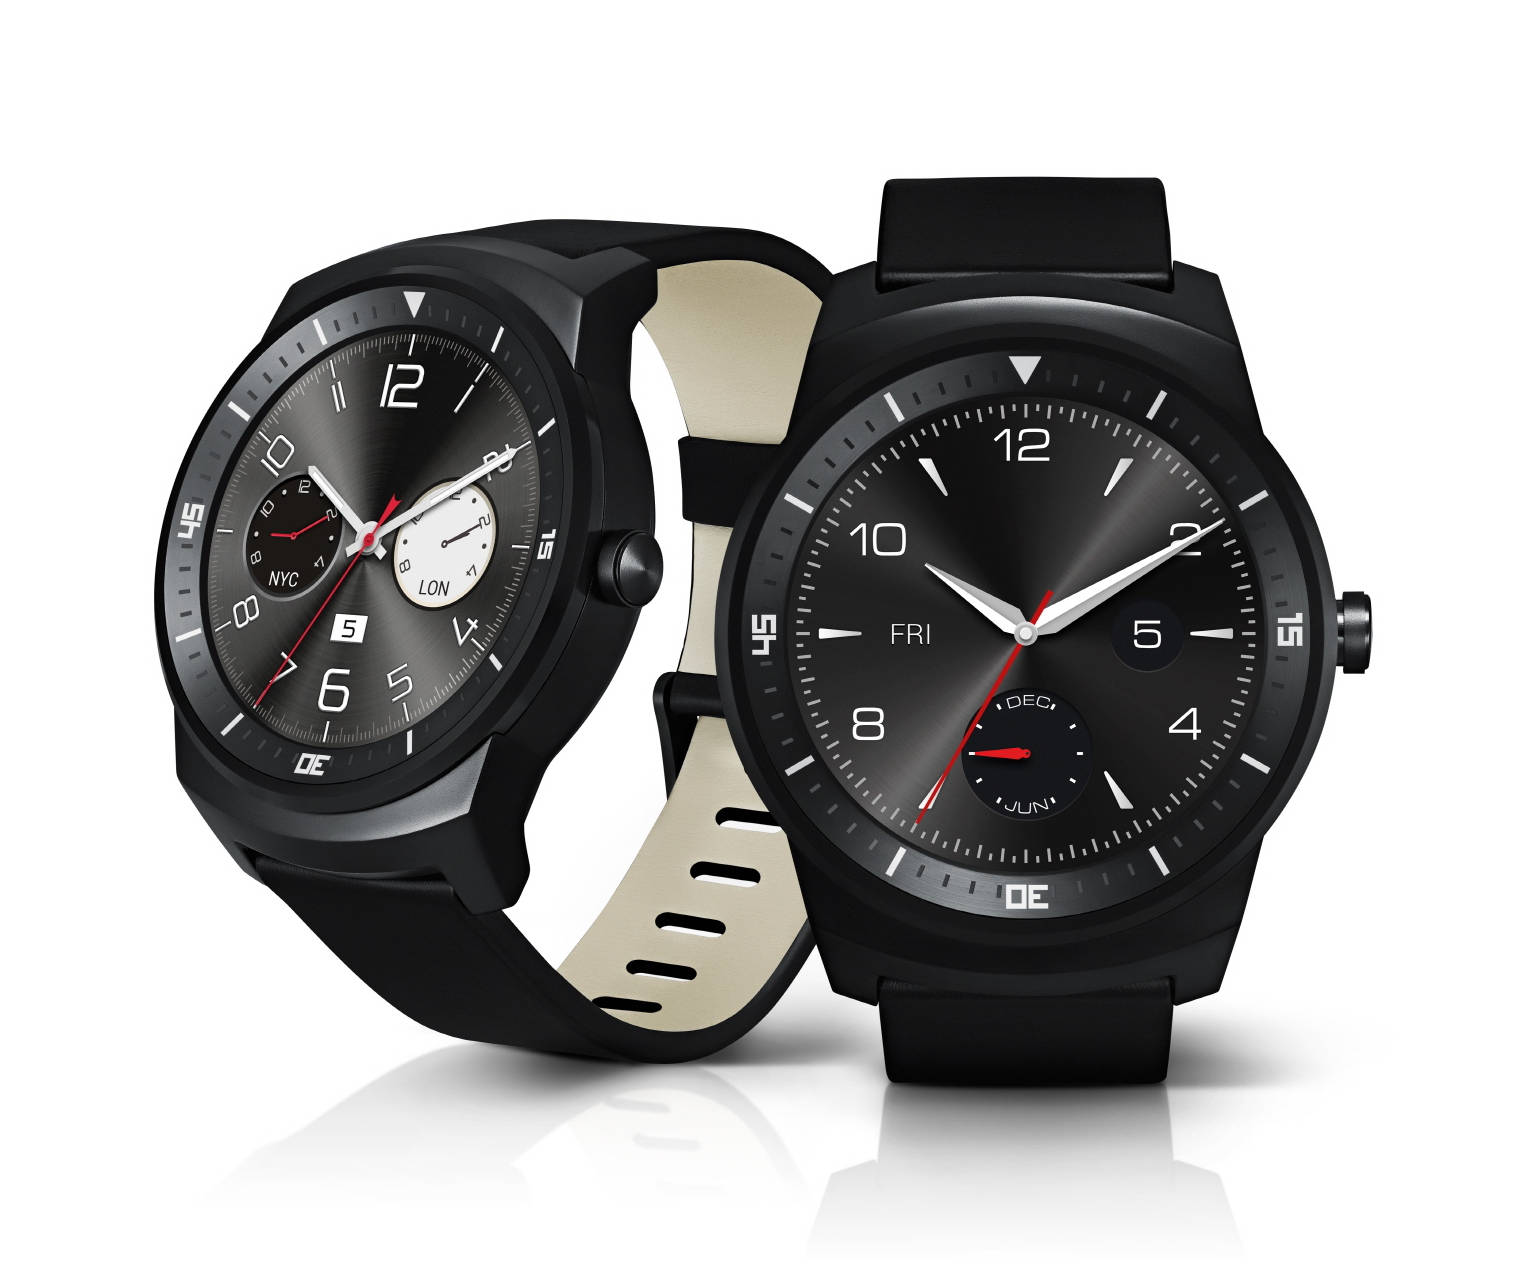 LG G Watch R Android Wear Adventures in QA